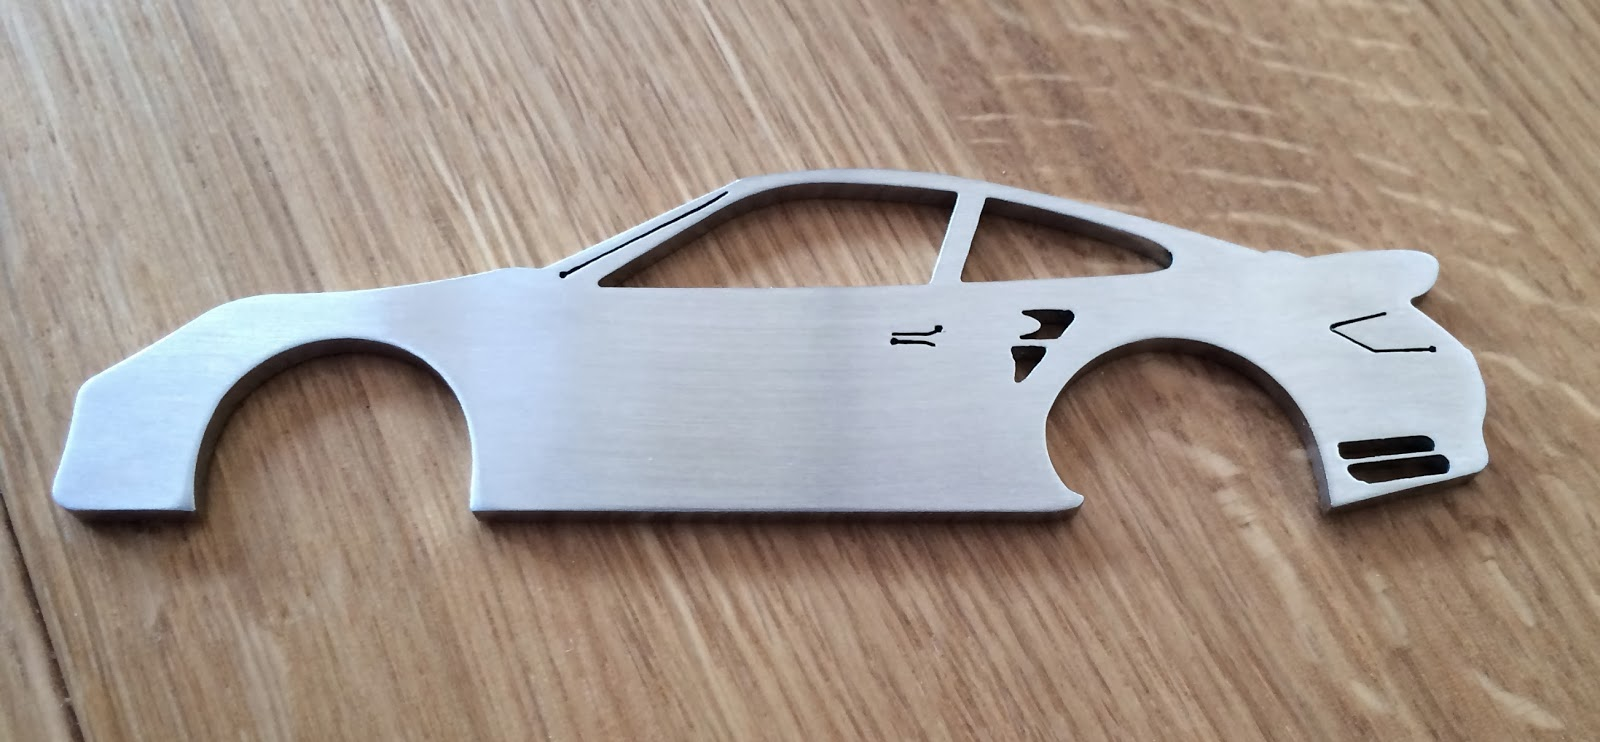 A Porsche 911 bottle opener - cool or what?